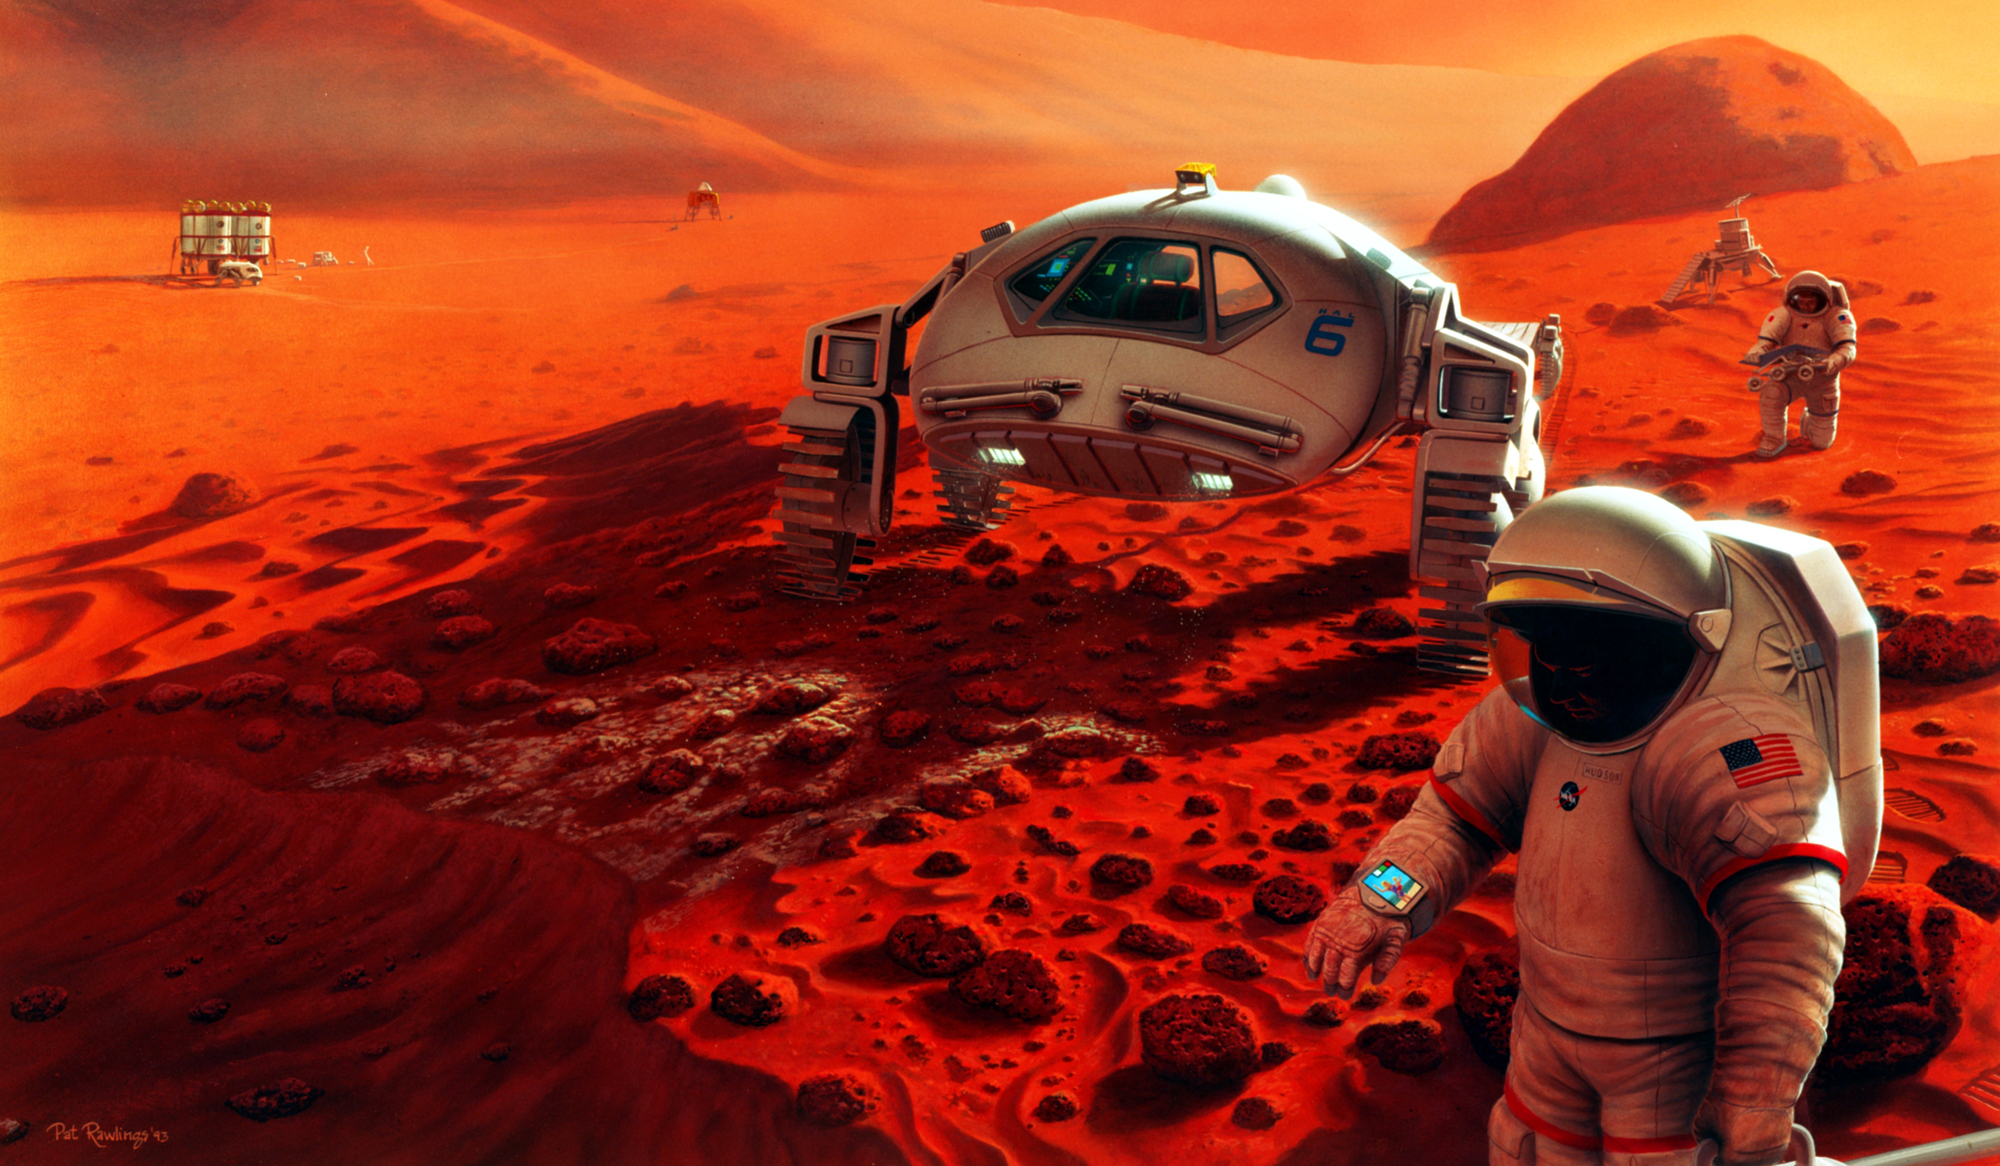 http://www.space.com/images/i/000/012/056/original/nasa-mars-art-manned-mission.jpg